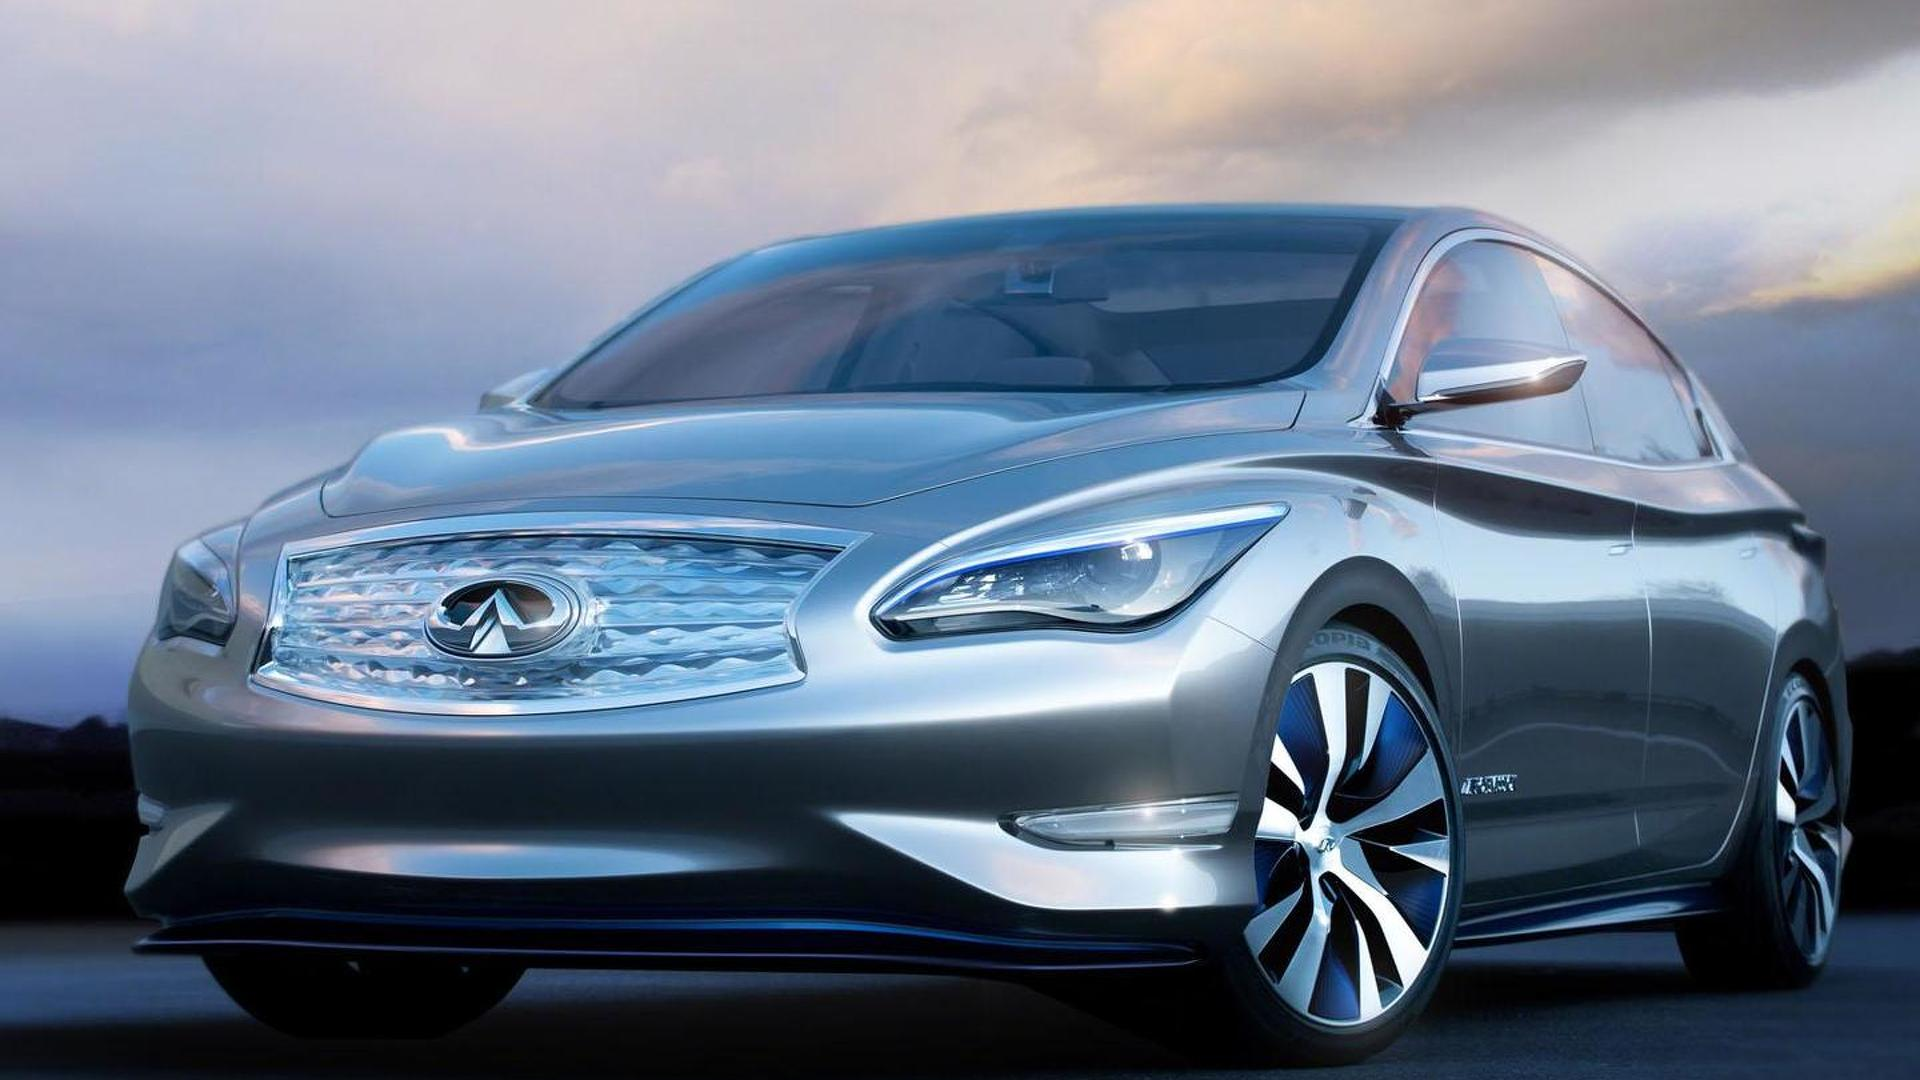 Infiniti reportedly shelves their electric vehicle